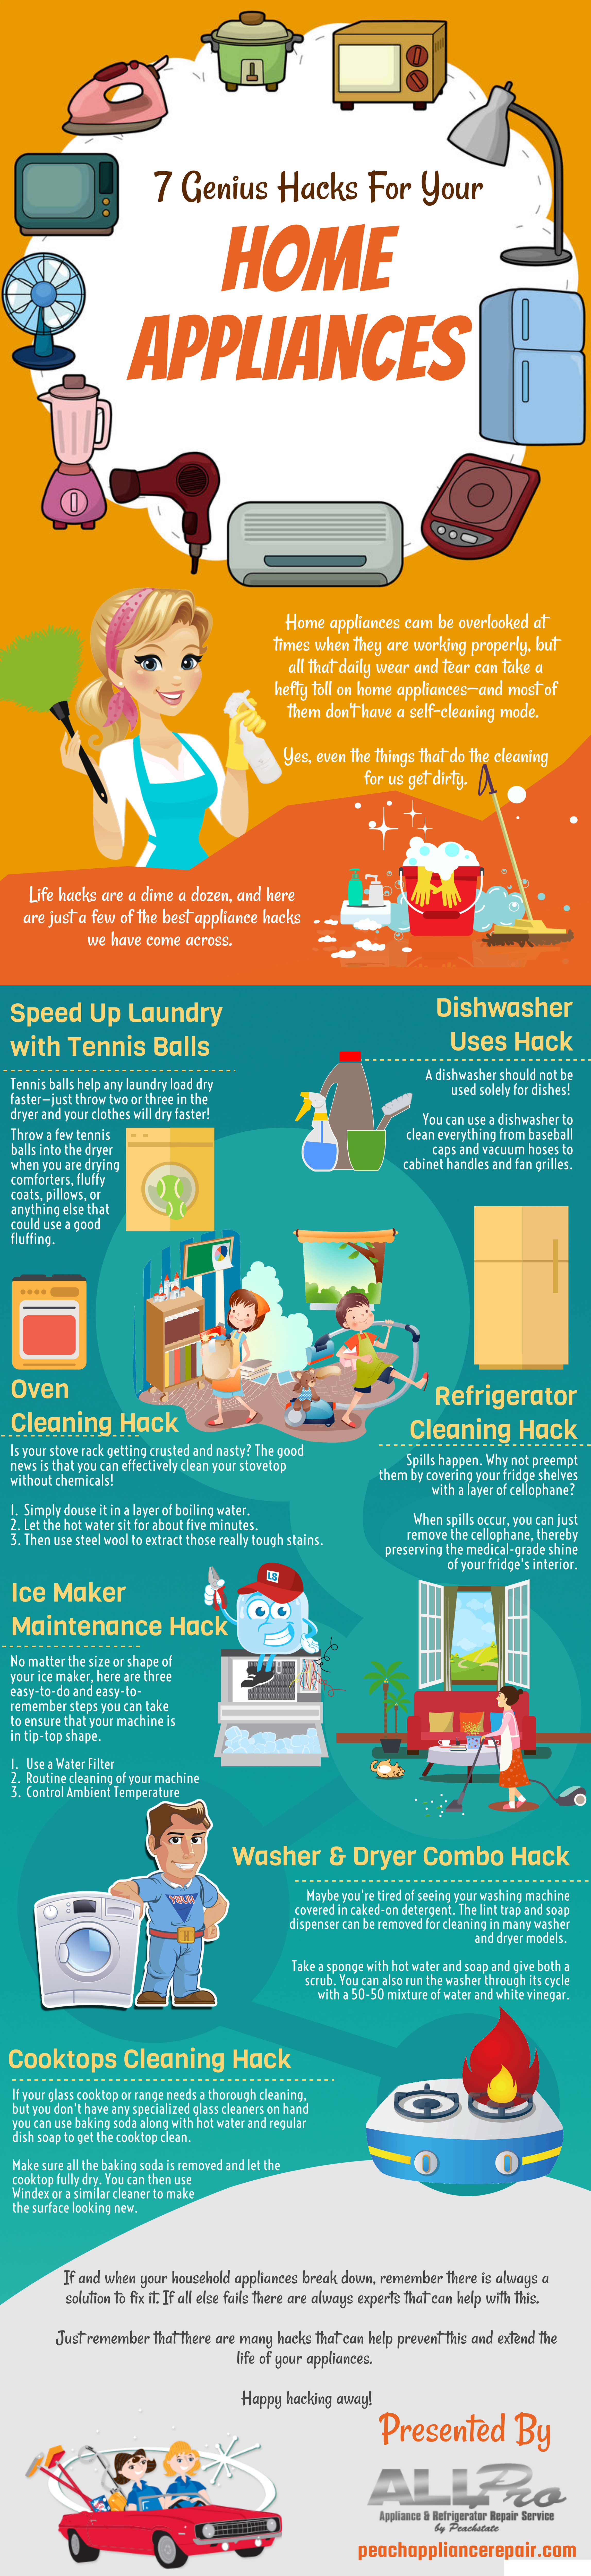 Cleaning Hacks for Your Home Appliances Worth Knowing About